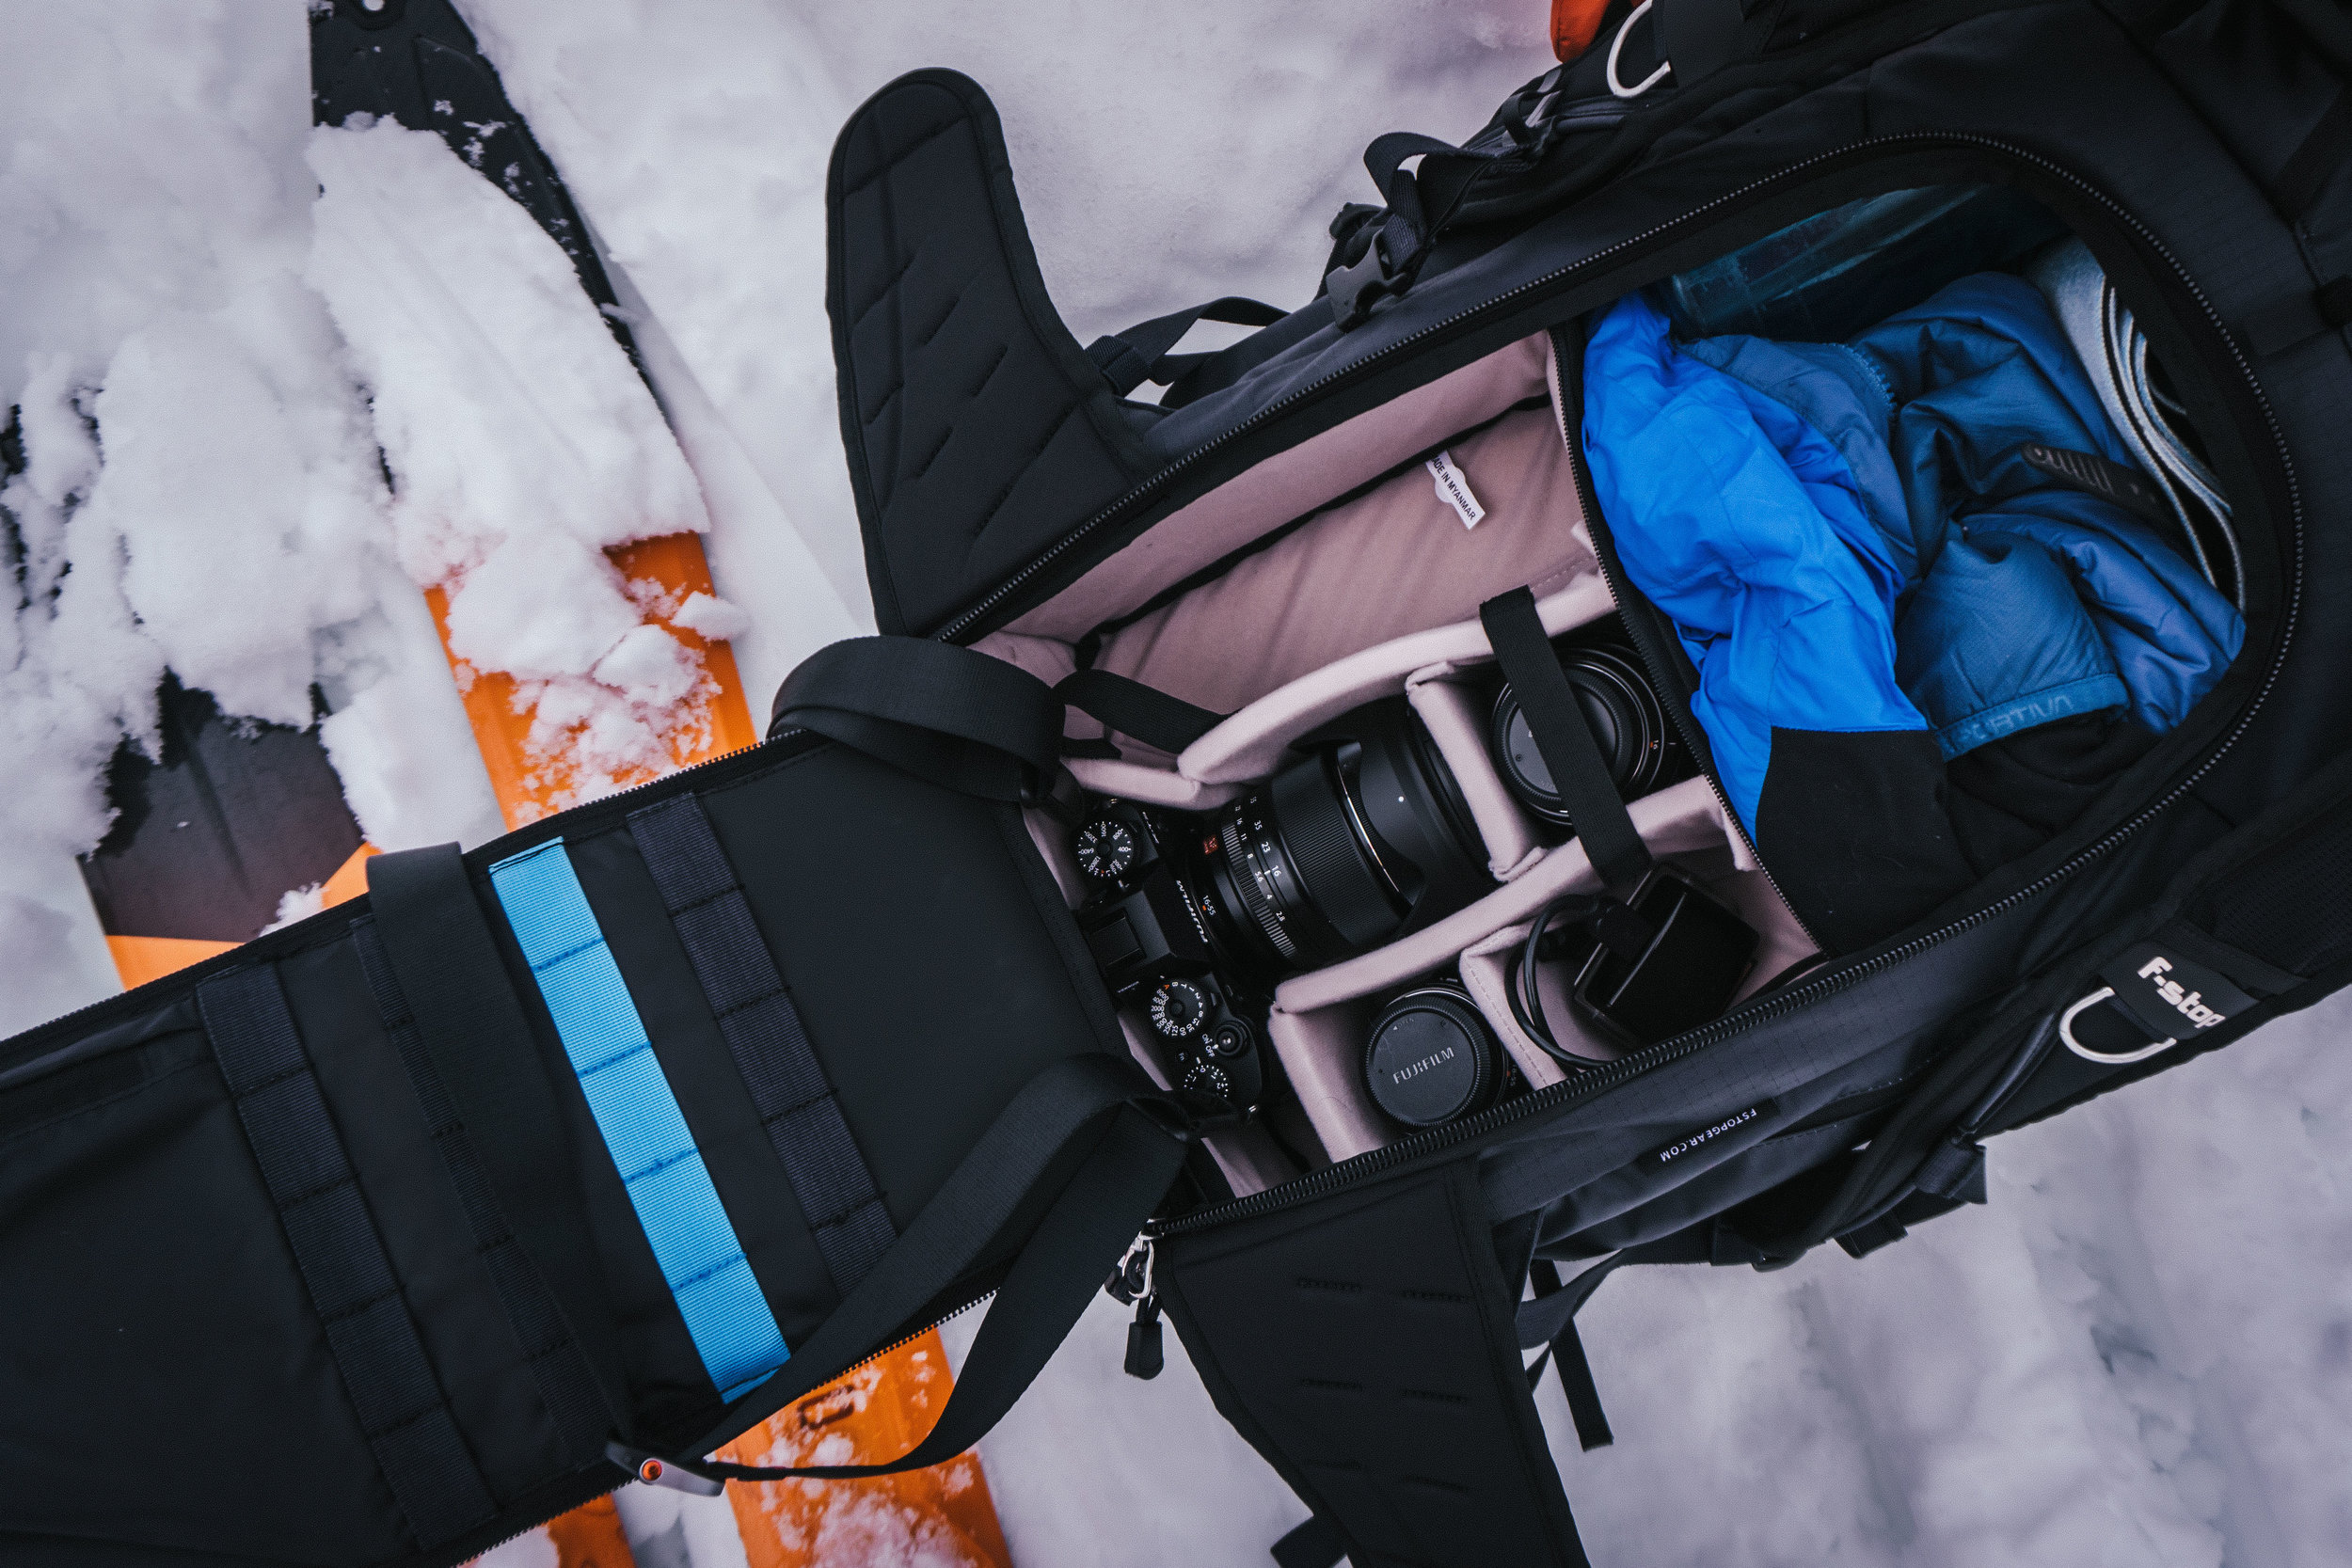 What I owned of the Fuji X-series packed away in my camera bag. It still takes up a lot of space, but was noticeably lighter and 'sleeker' than my Canon system. Felt great on the hike up Aspen mountain. A win for the mirrorless system!